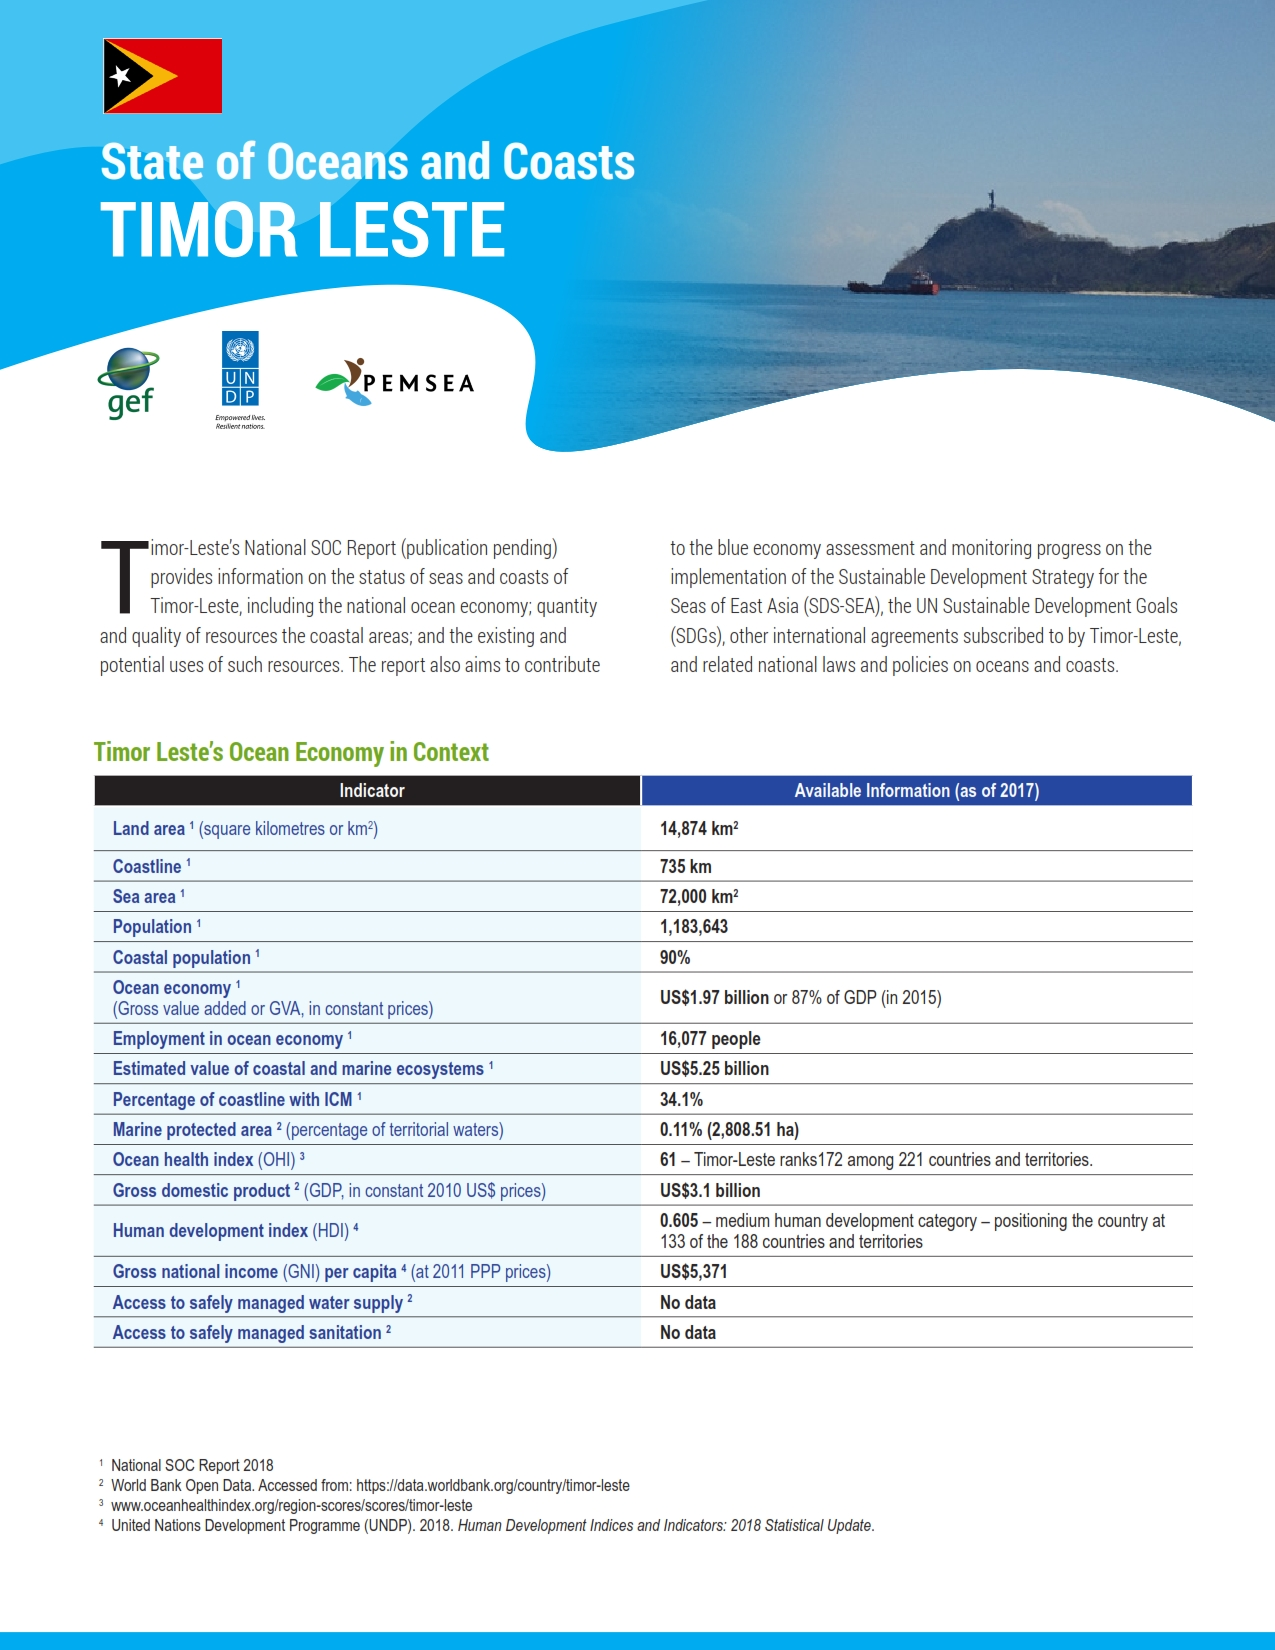 State of Oceans and Coasts of Timor-Leste | PEMSEA